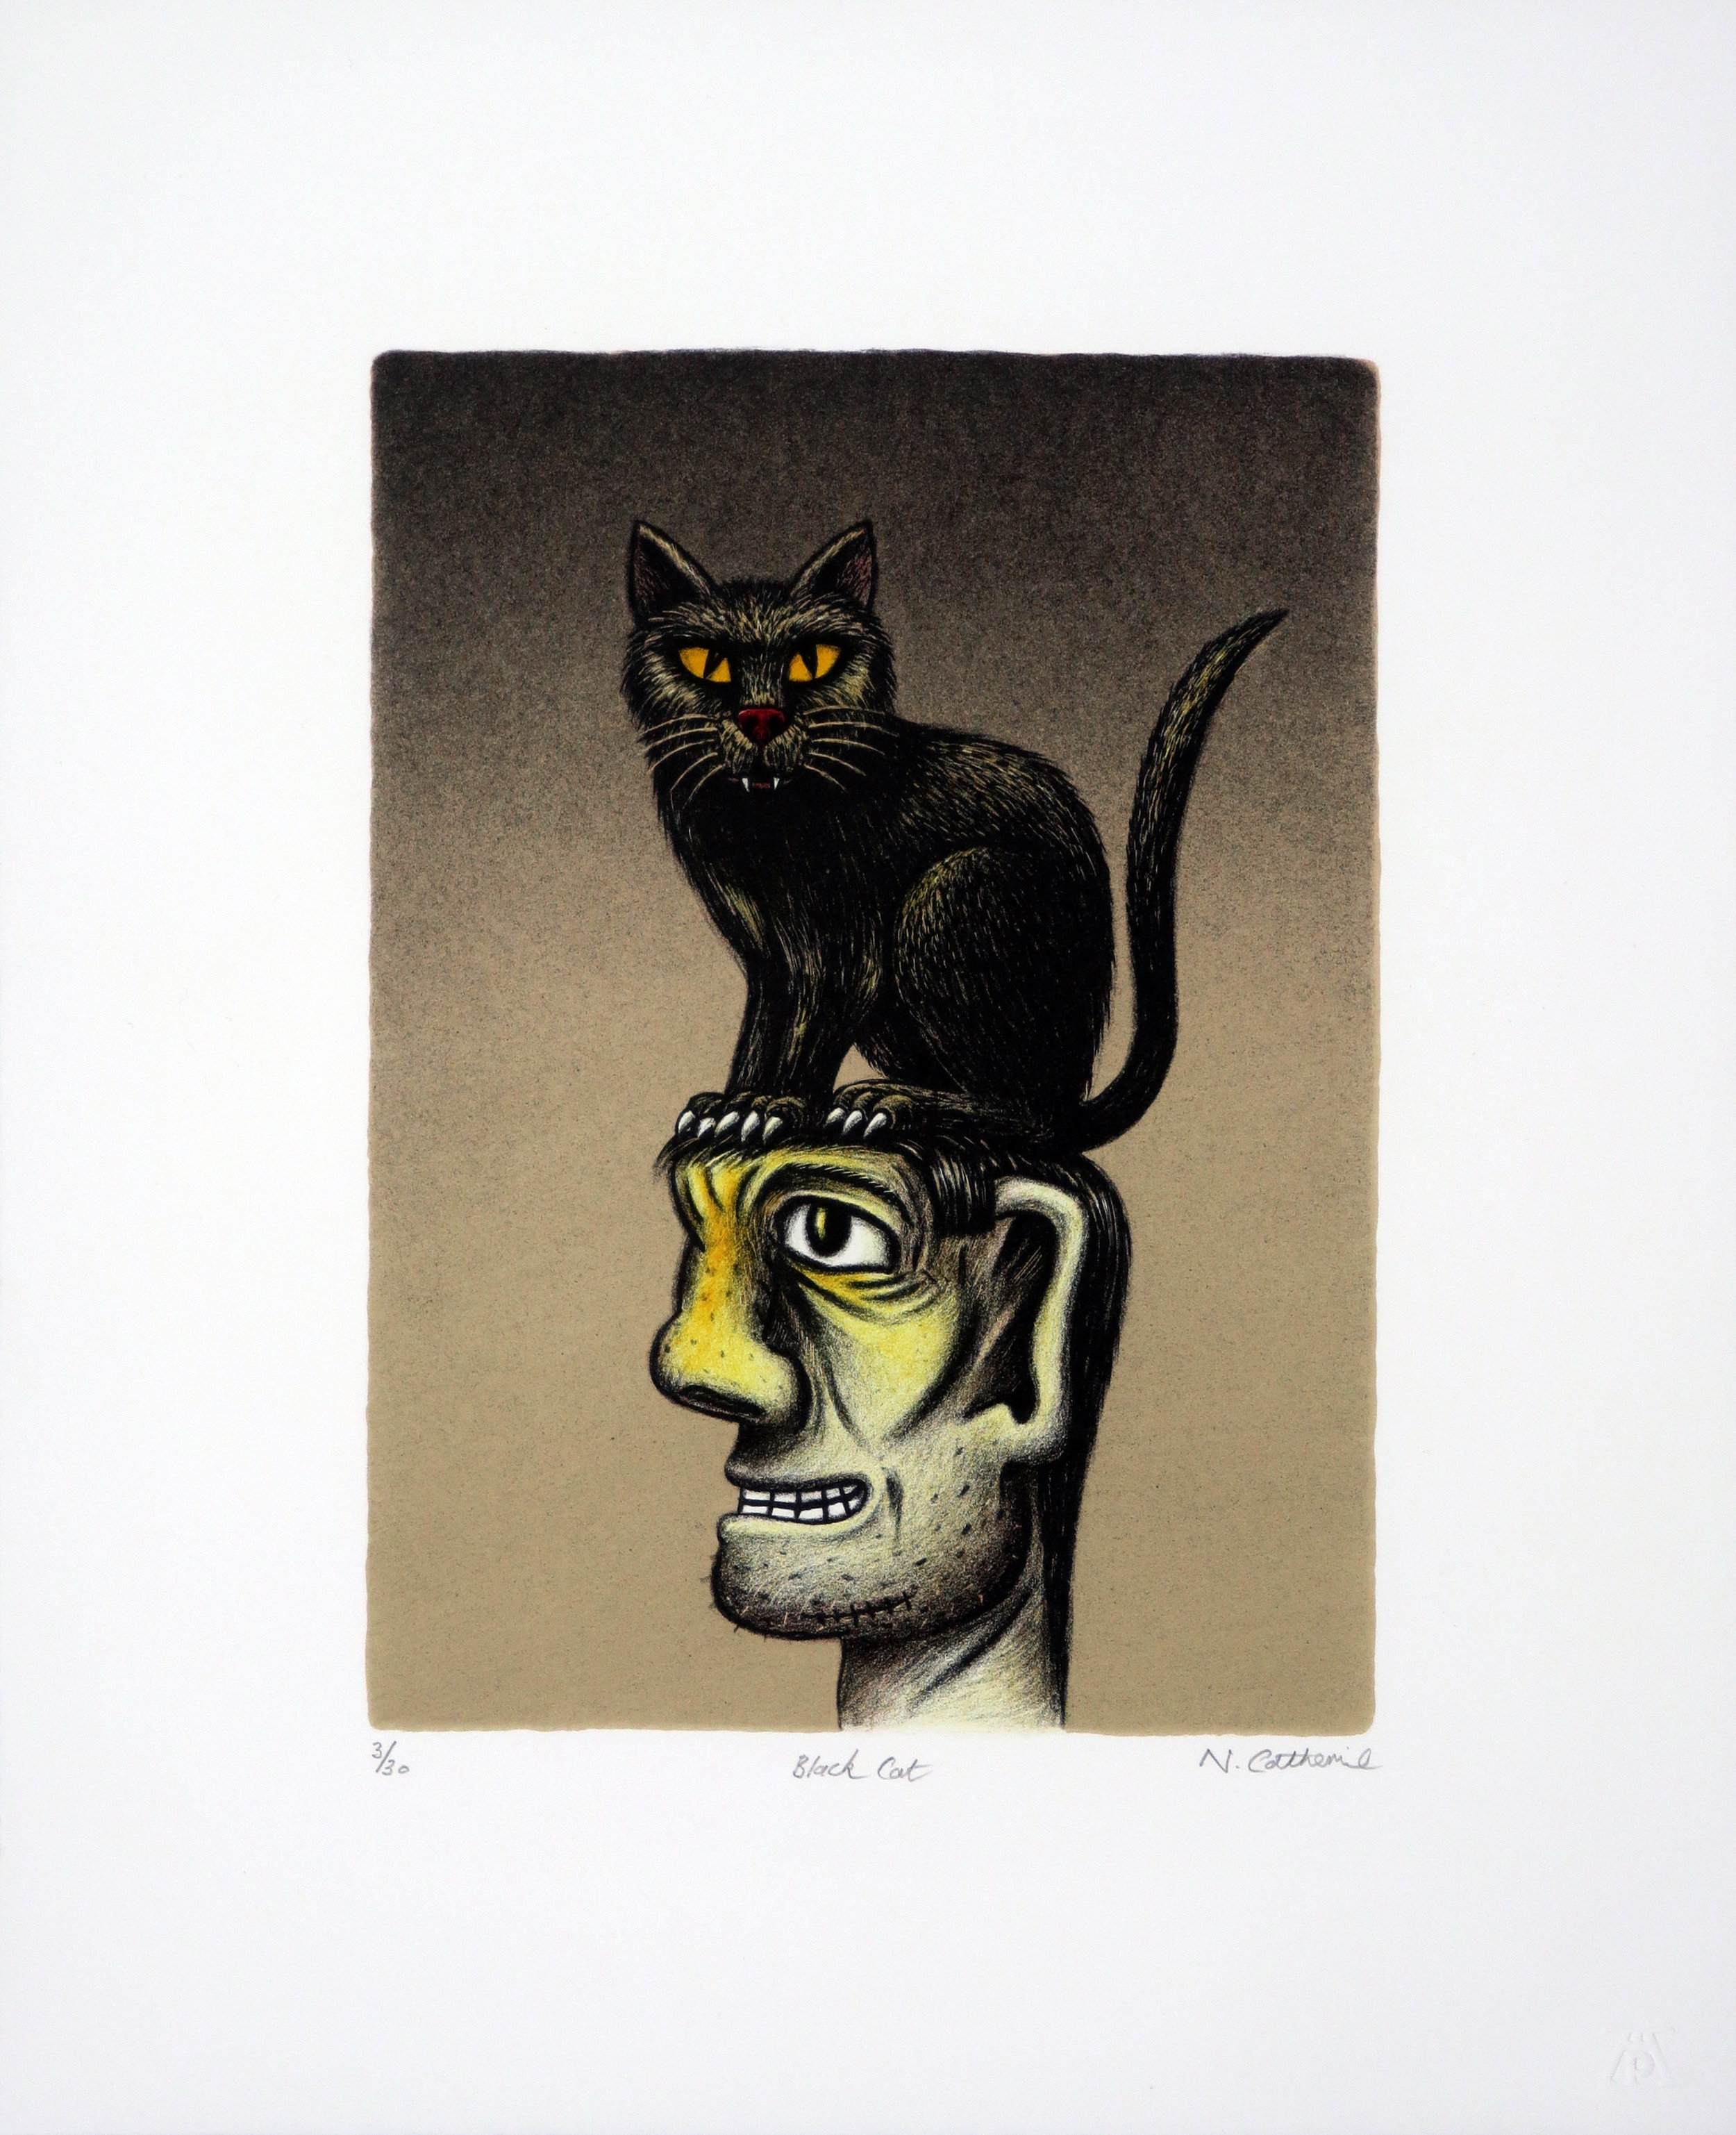 Norman Catherine, Black Cat, Lithograph, 300x375.jpg